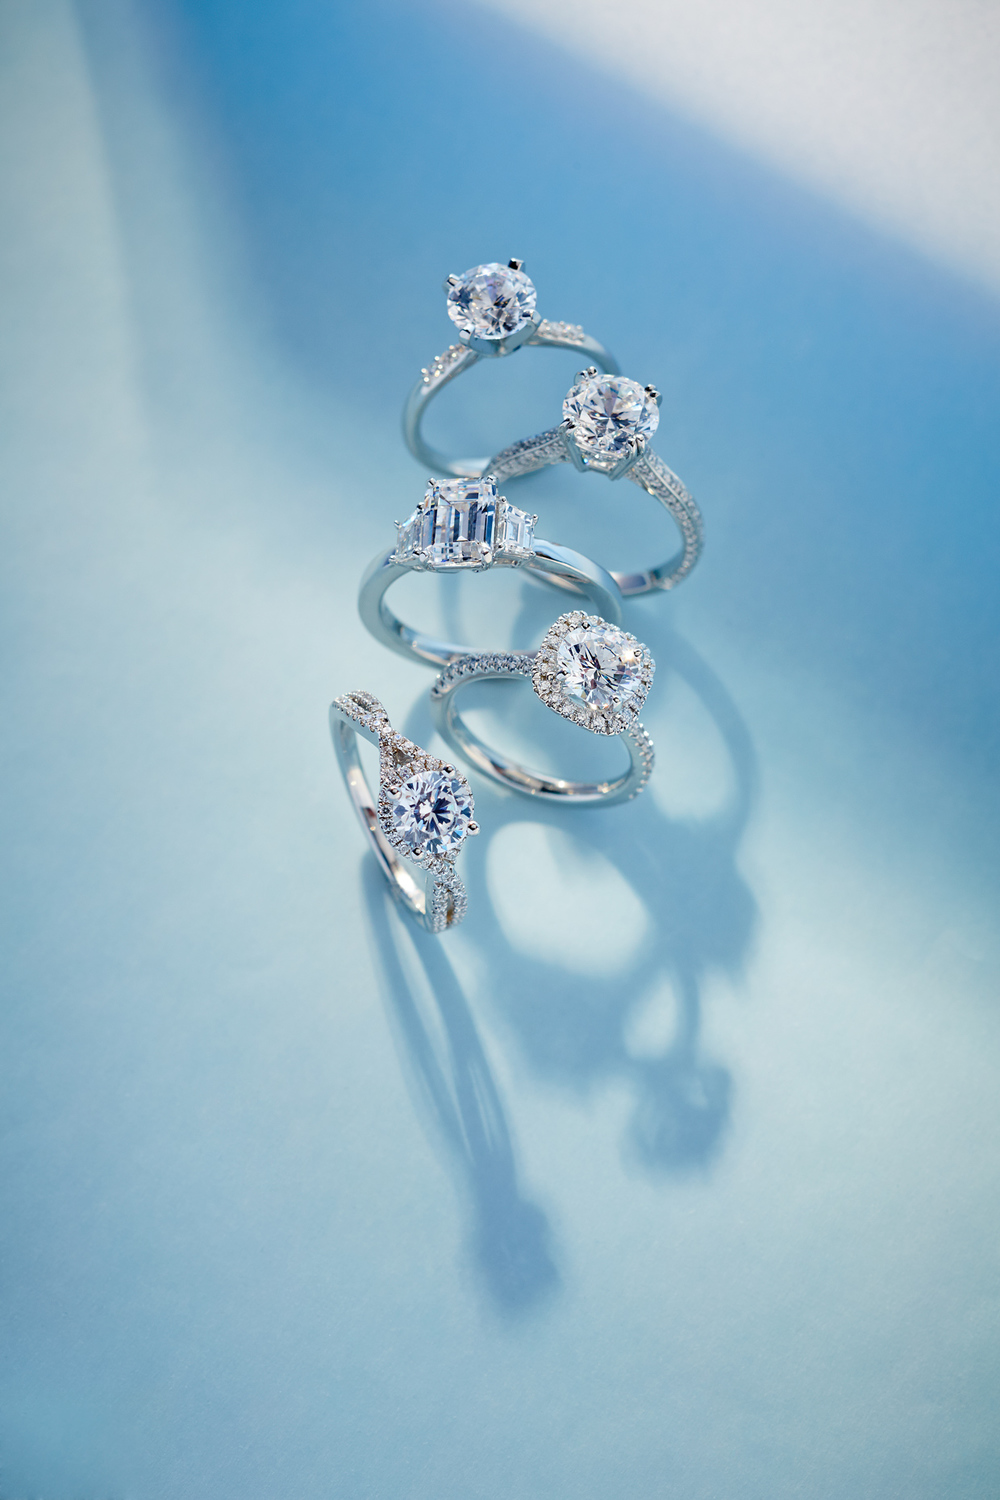 Product photography Jewelry Derek Israelsen Diamond Rings